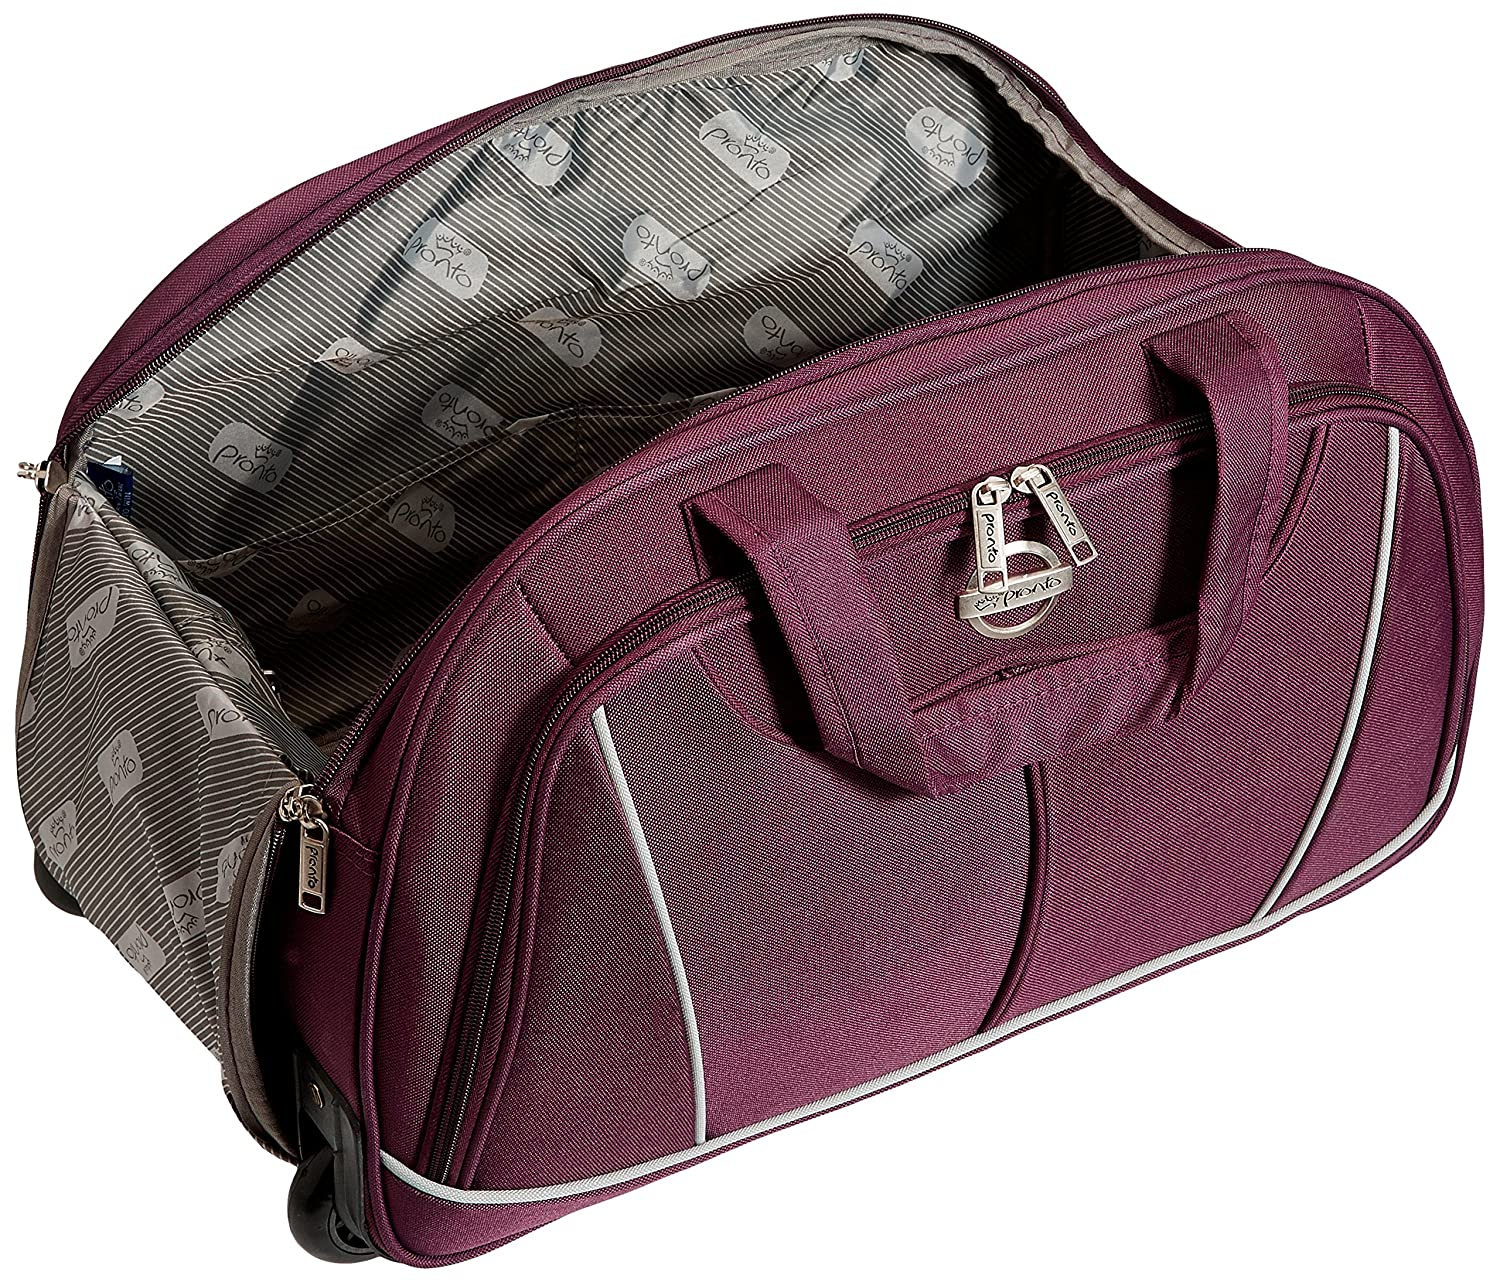 637b9b0465 Pronto Miami Polyester 50 cms Dark Purple Travel Duffle (6572 - PL)   Amazon.in  Bags